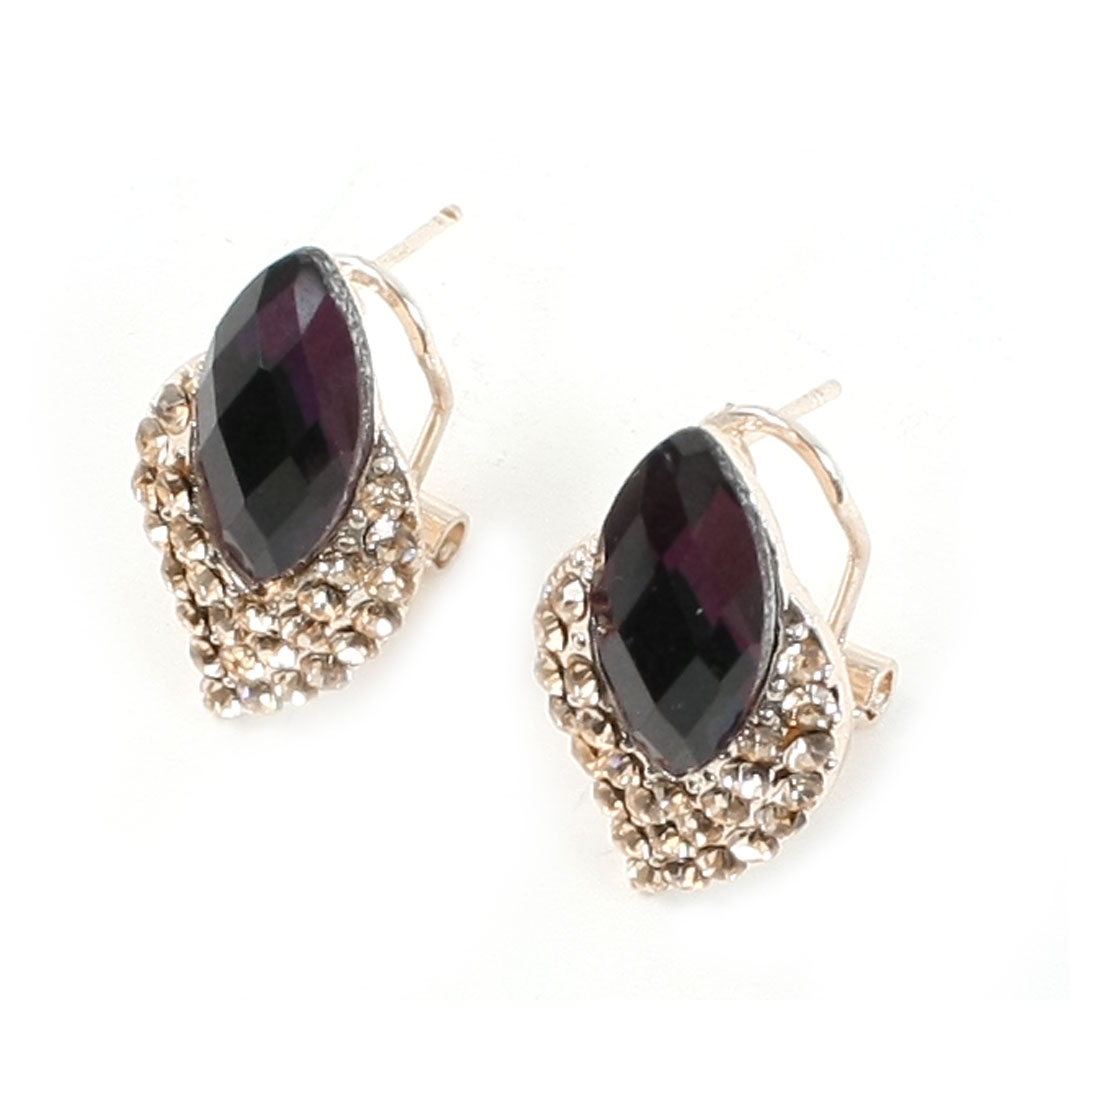 Eggplant Oval Rhinestone Inlaid Gold Tone Faux Crystal Detail Metal French Clip Stud Earrings for Lady